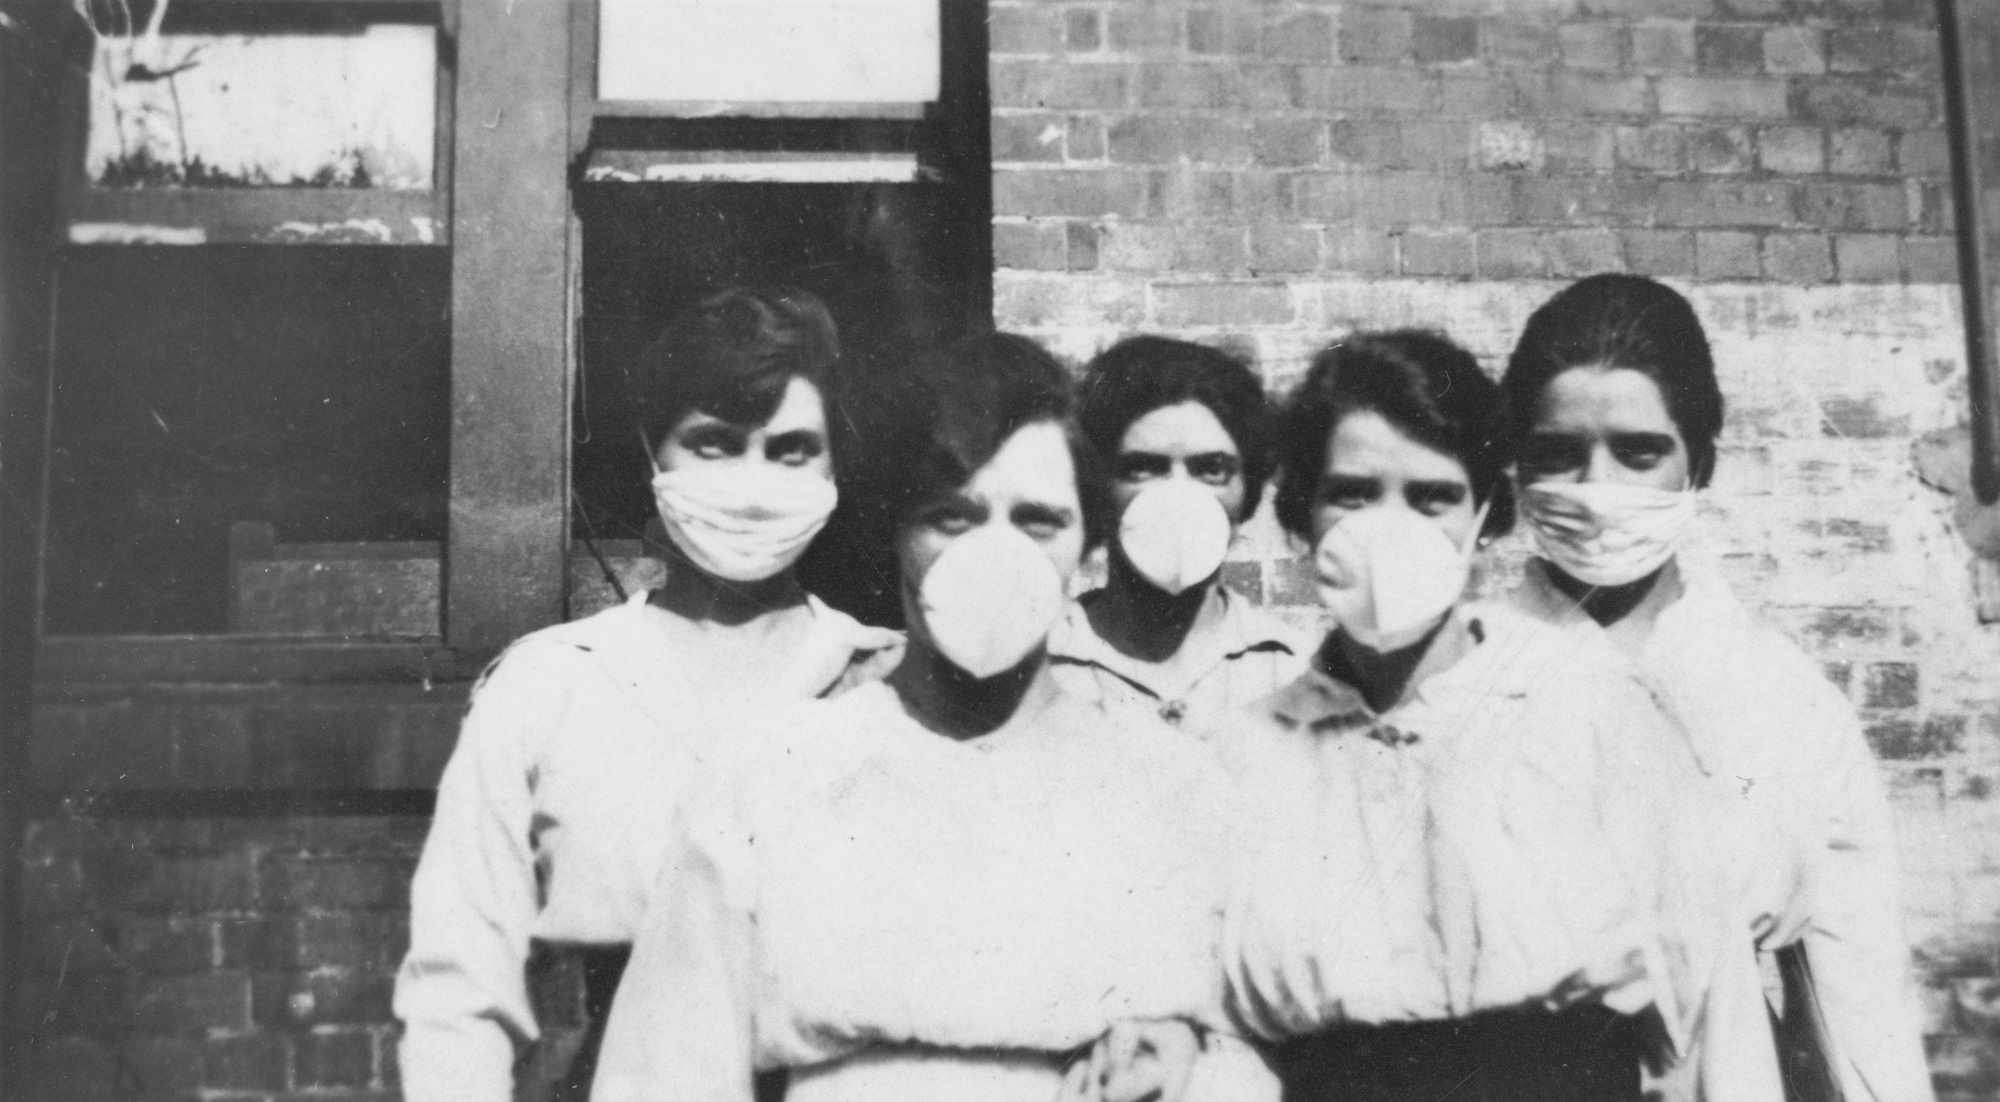 The Flu That Killed 50 Million. (Image by BBC/State Library of Queensland)